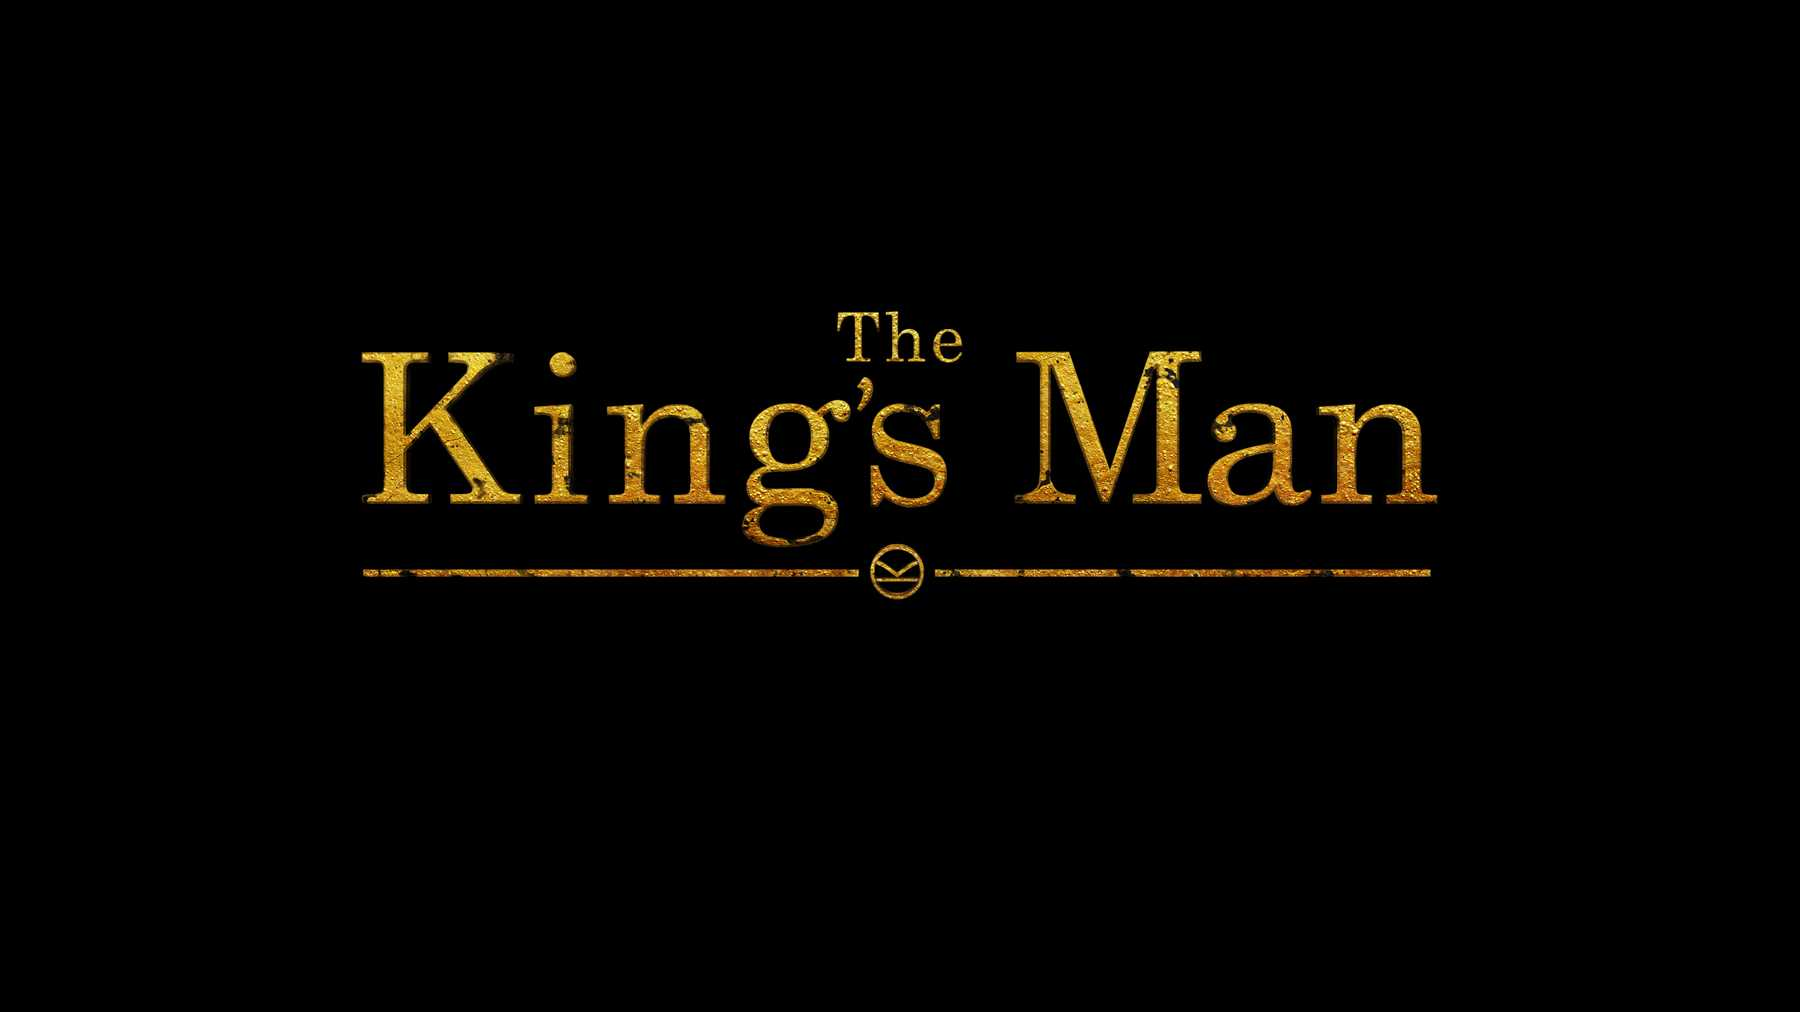 'The King's Man' - Trailer